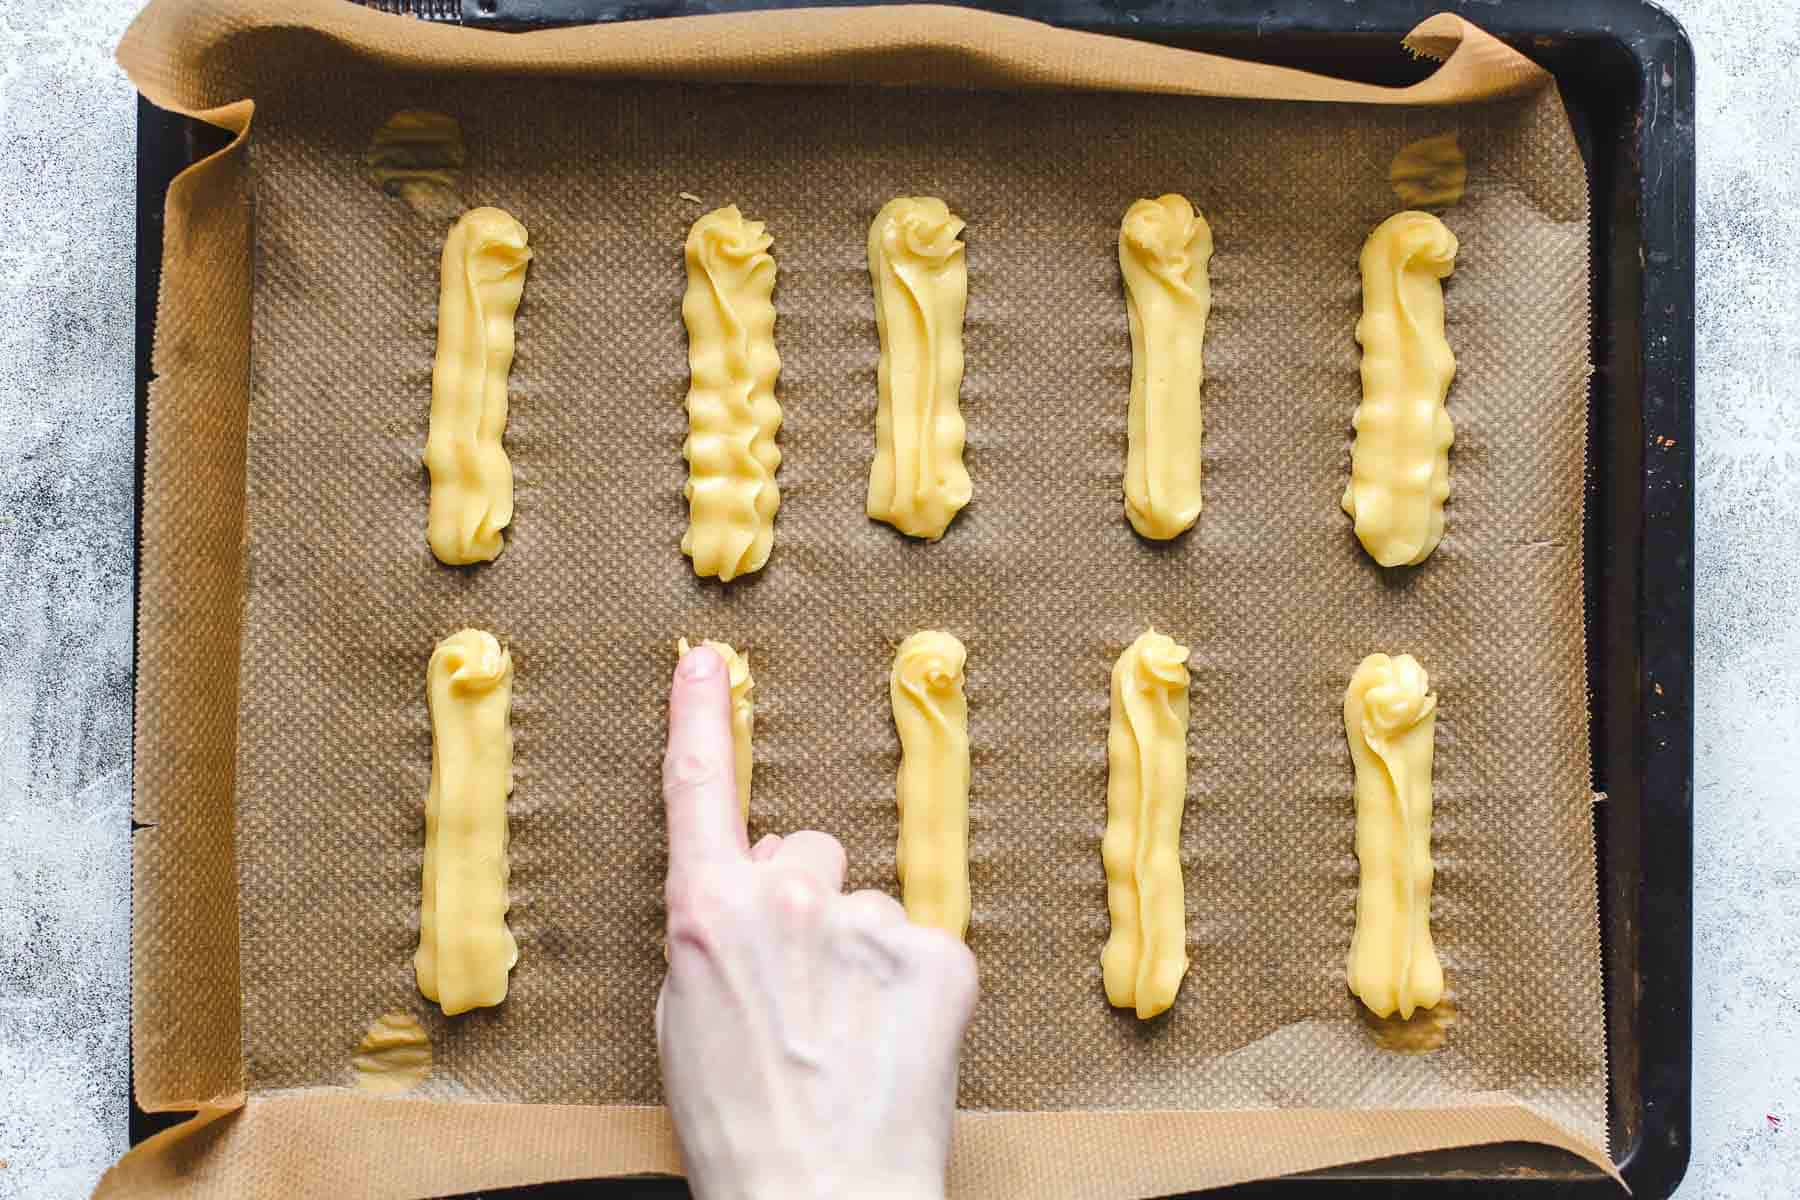 pressing down the tip of the puff pastry with wet finger